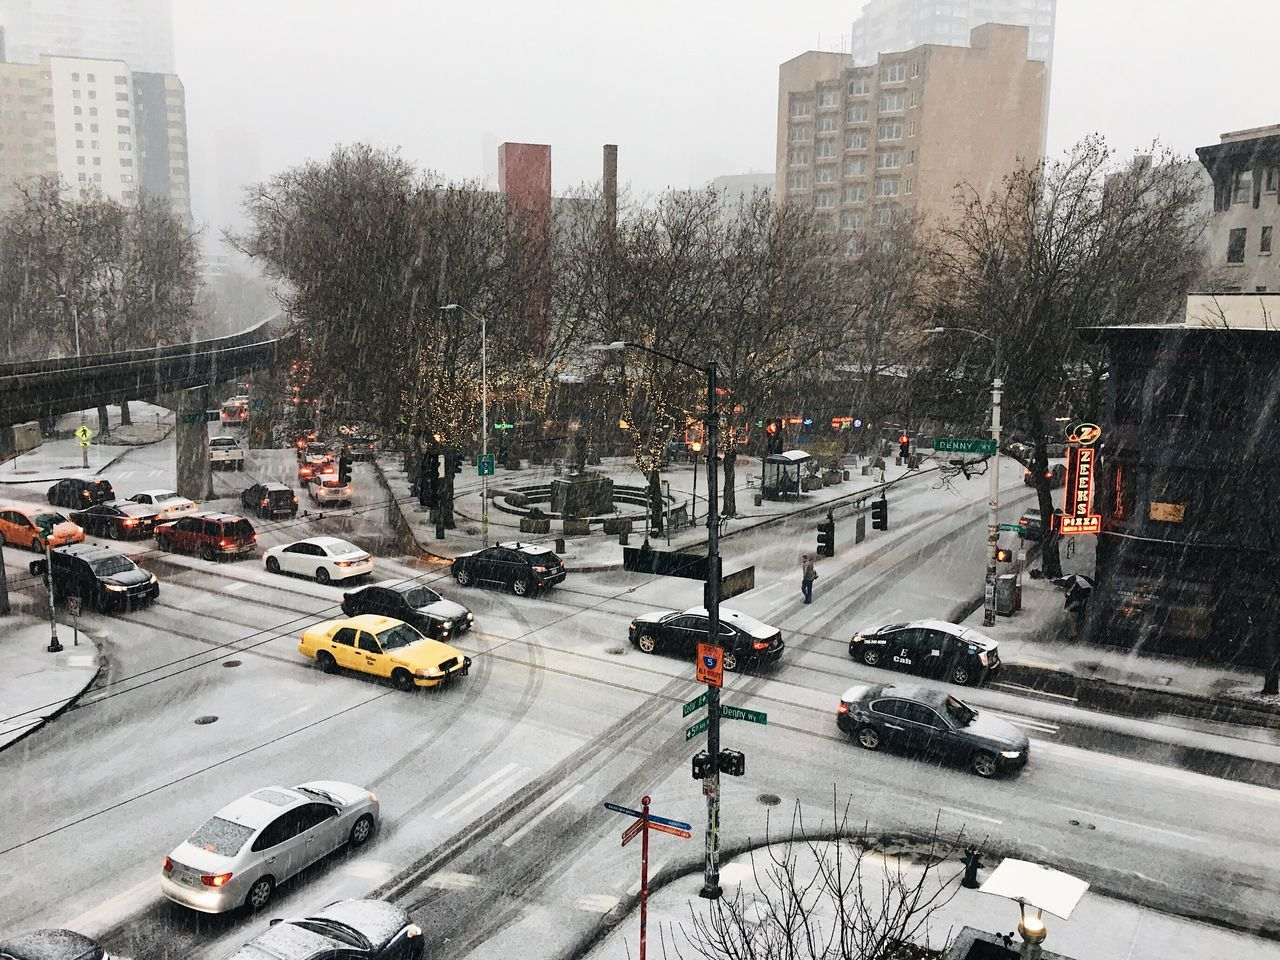 today's snowpocalypse scene. i like a good weather event. Seattle